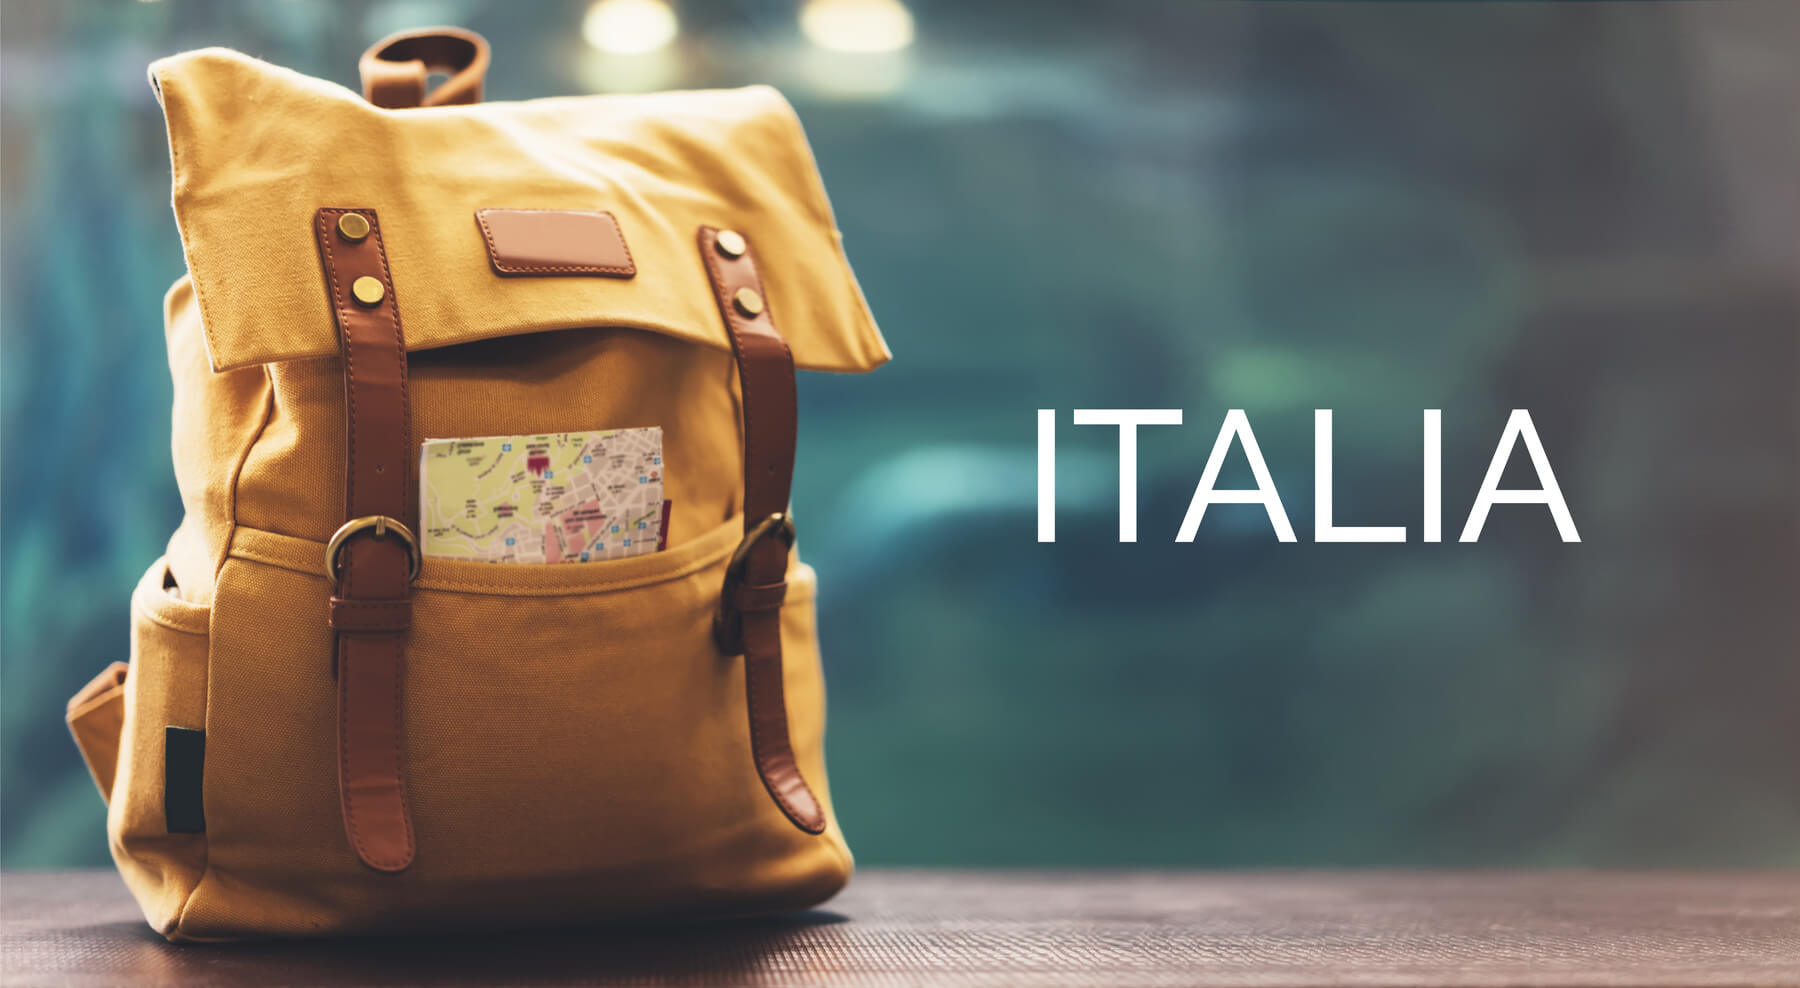 More travel, Italy